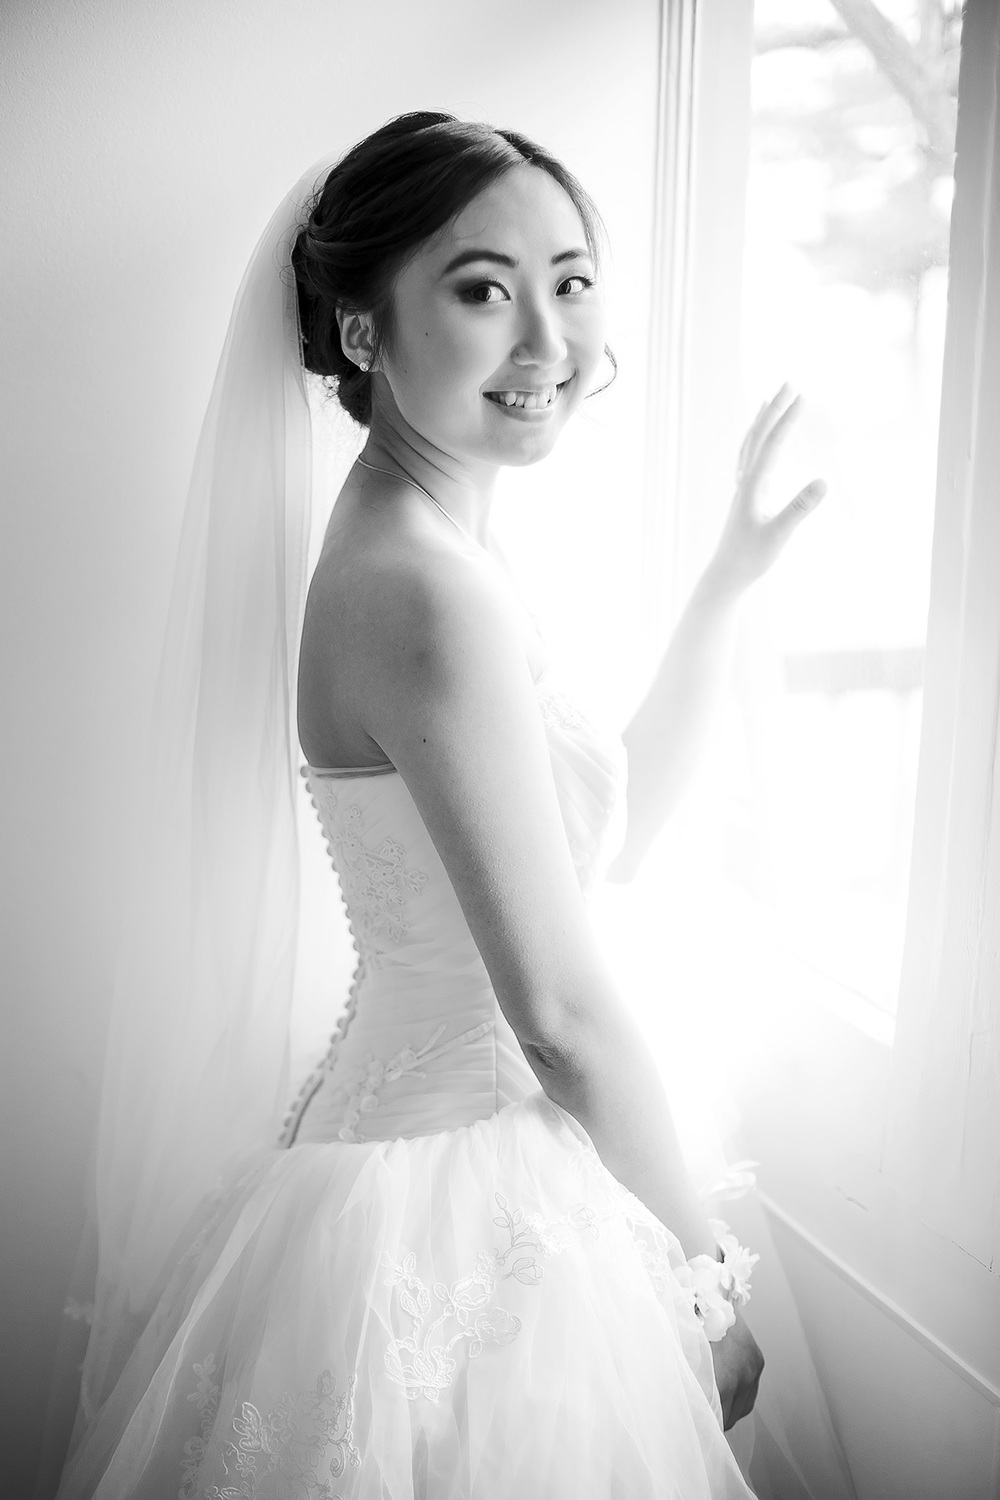 Black and White Bridal Preparation hands photo by window 9